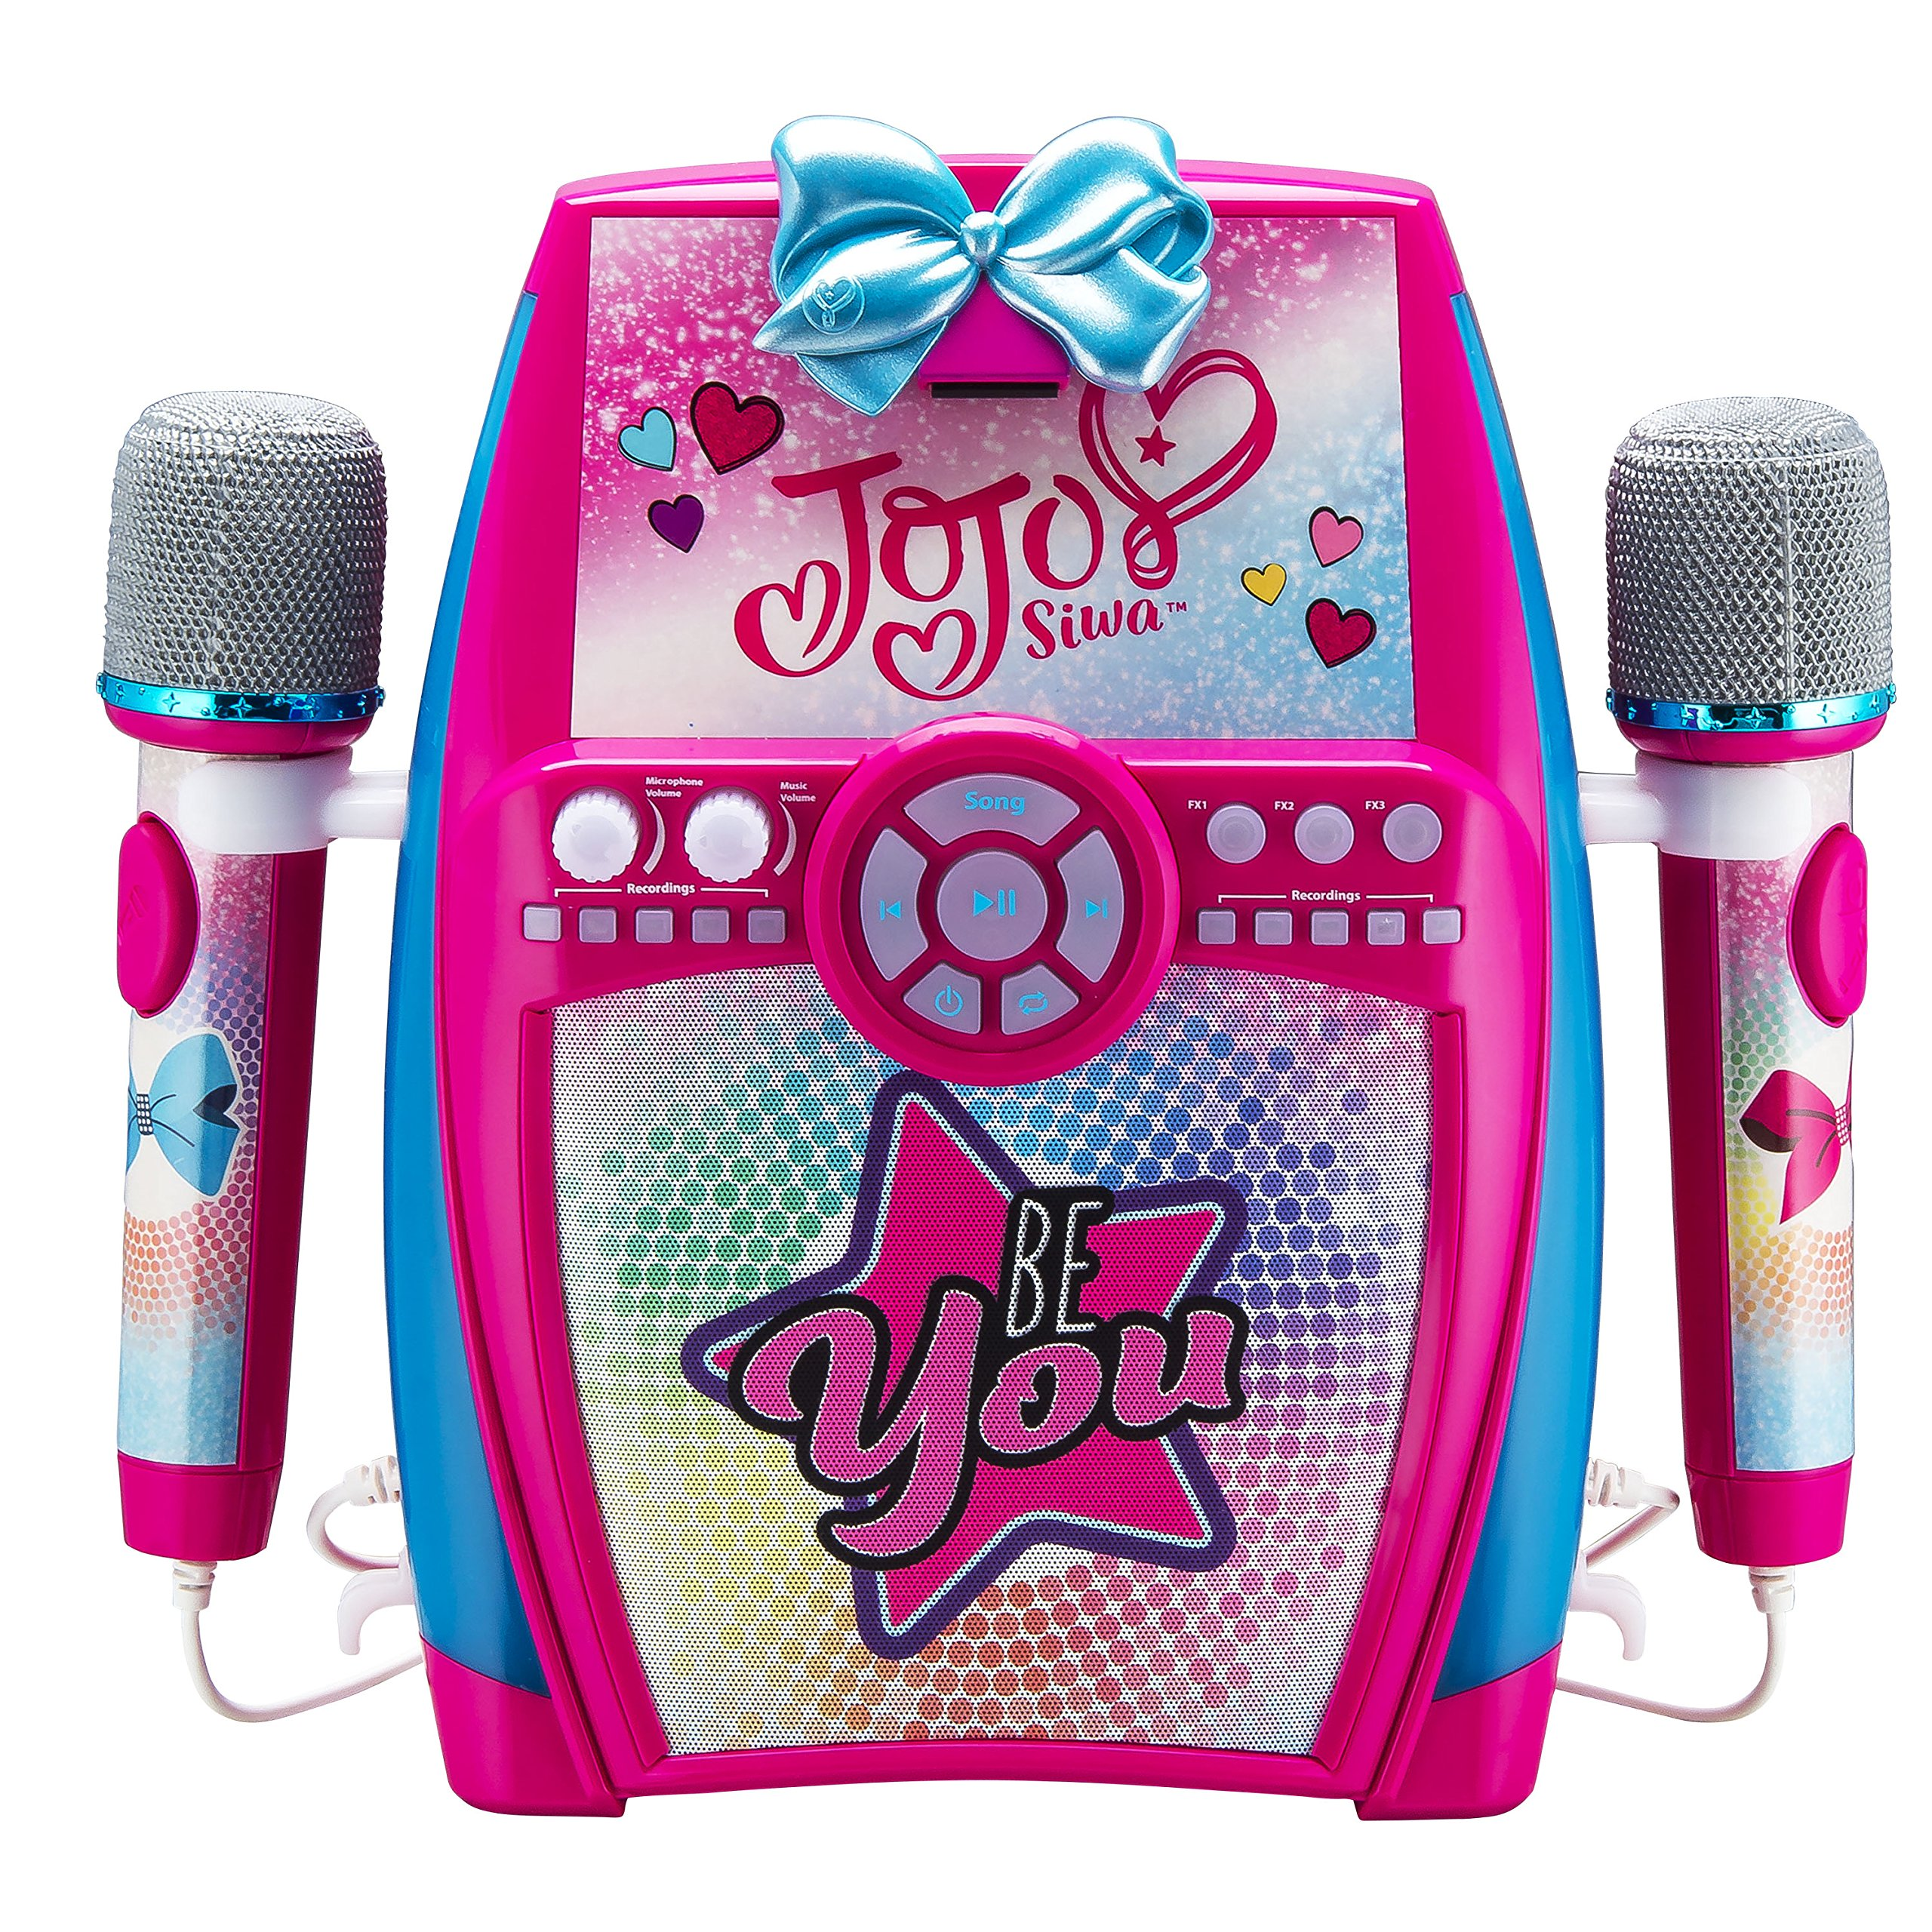 eKids Jojo Siwa Bow Digital Recording Studio with Dual Microphones - Record, Sing, and Create by eKids